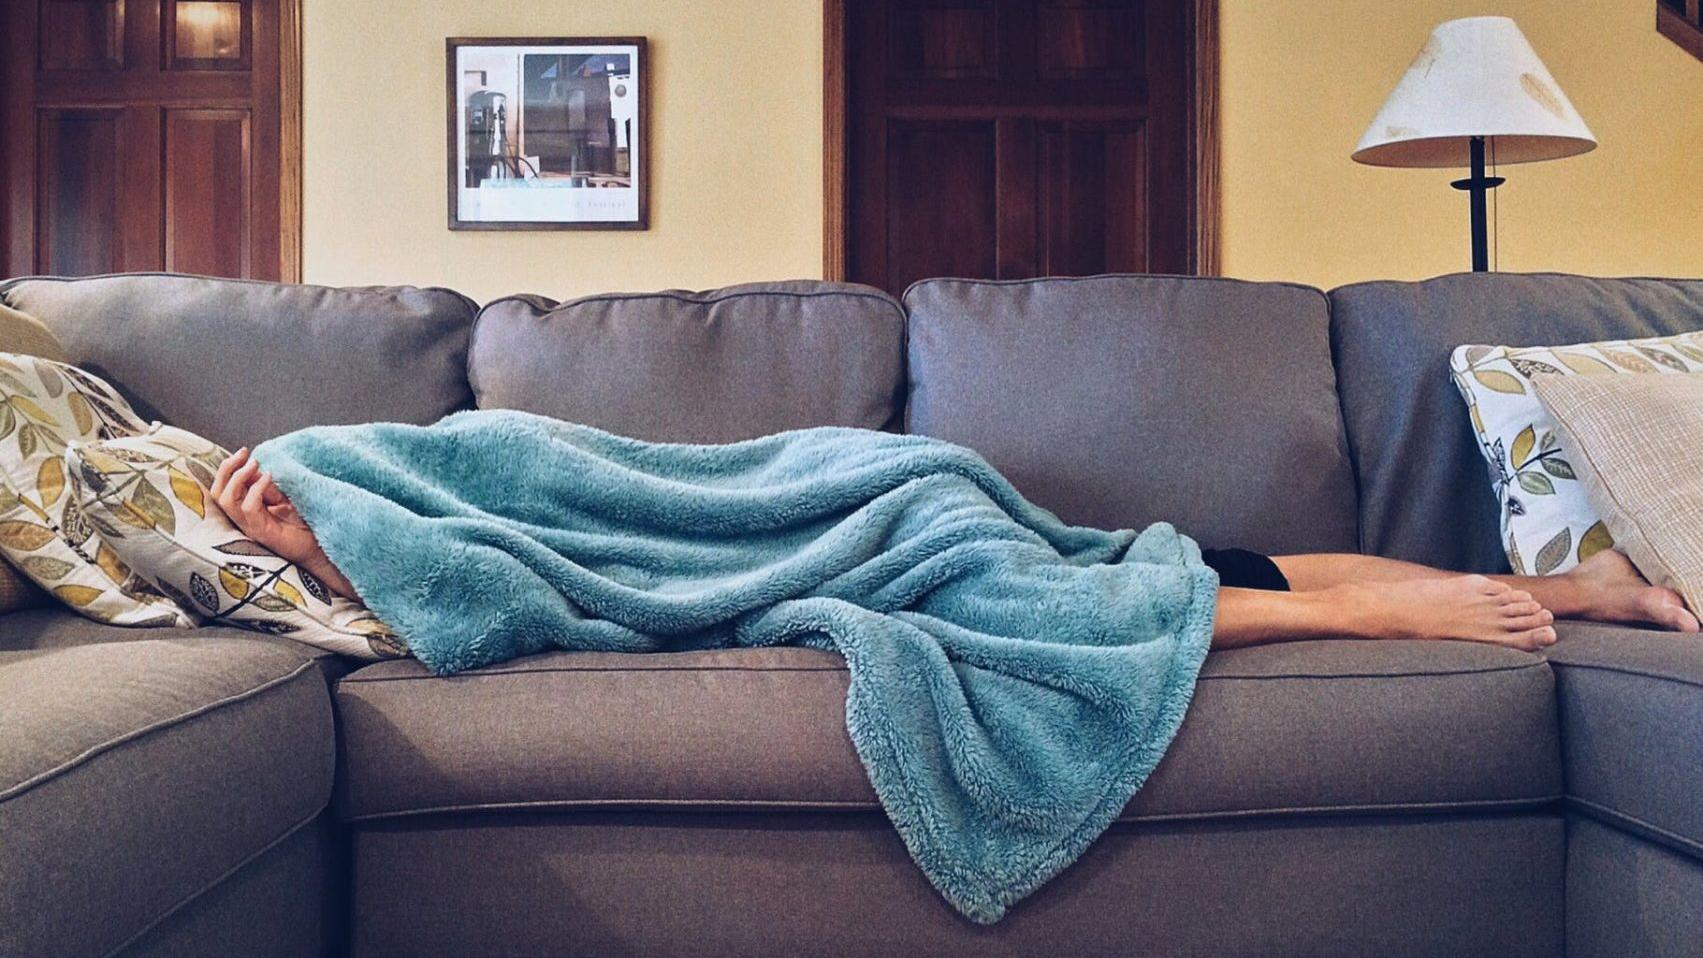 How to make your sofa bed more comfortable for guests